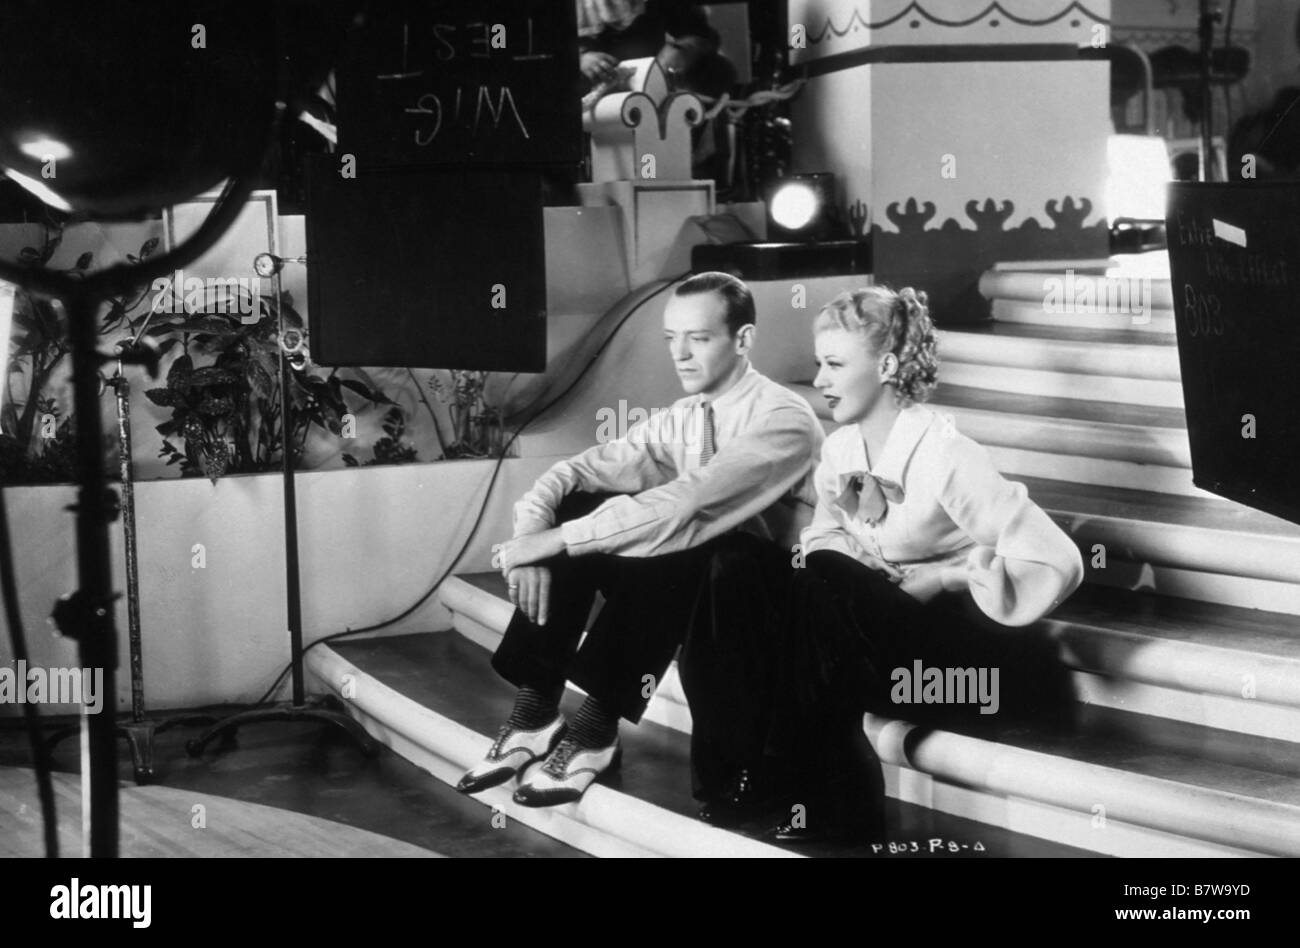 Roberta Roberta  Year: 1935 USA Fred Astaire, Ginger Rogers sur le tournage, on the set  Director: William A. Seiter - Stock Image